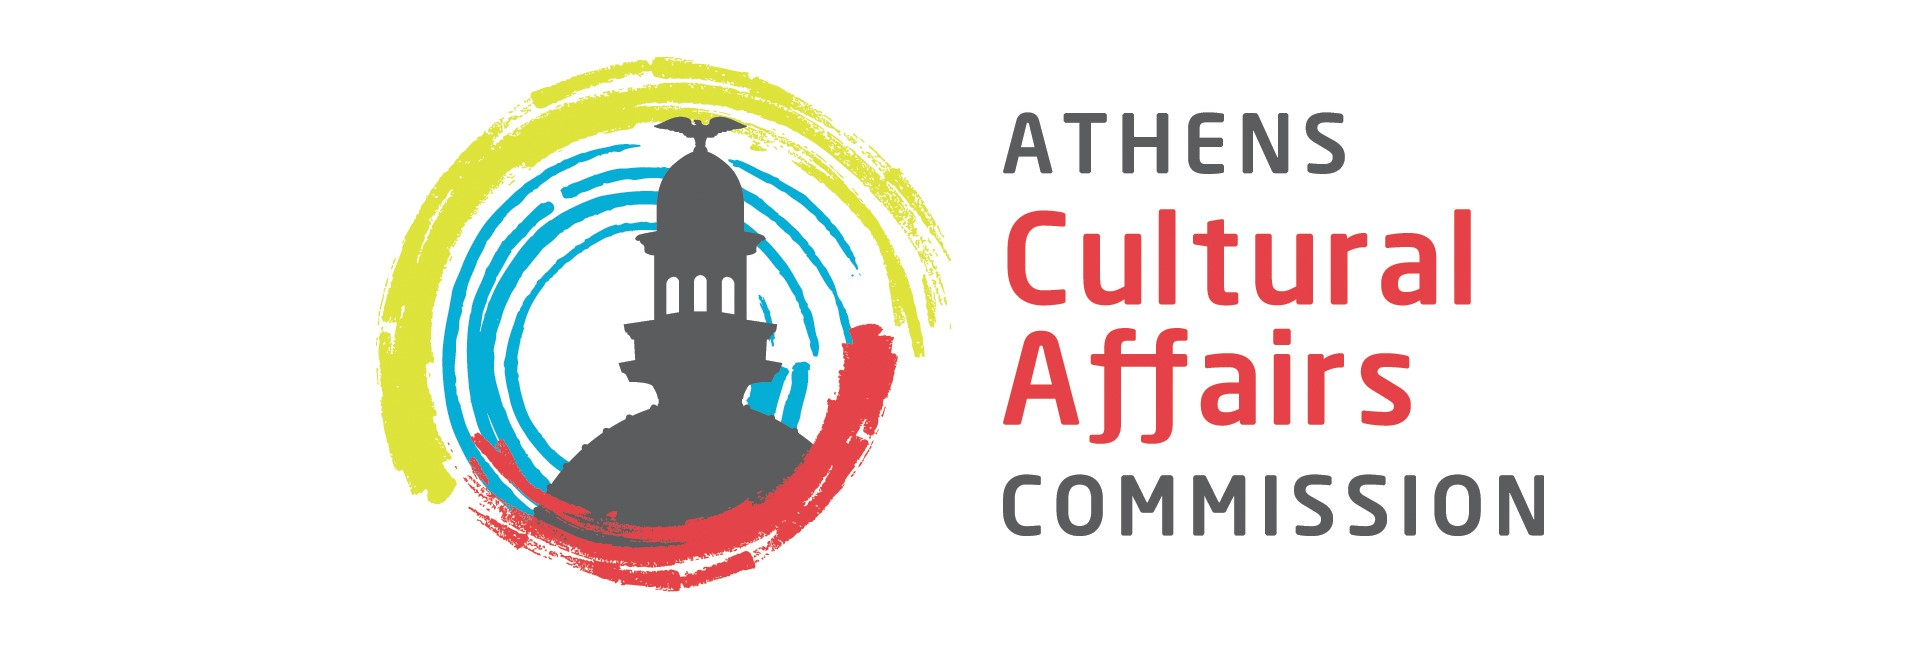 Athens Cultural Affairs Commission